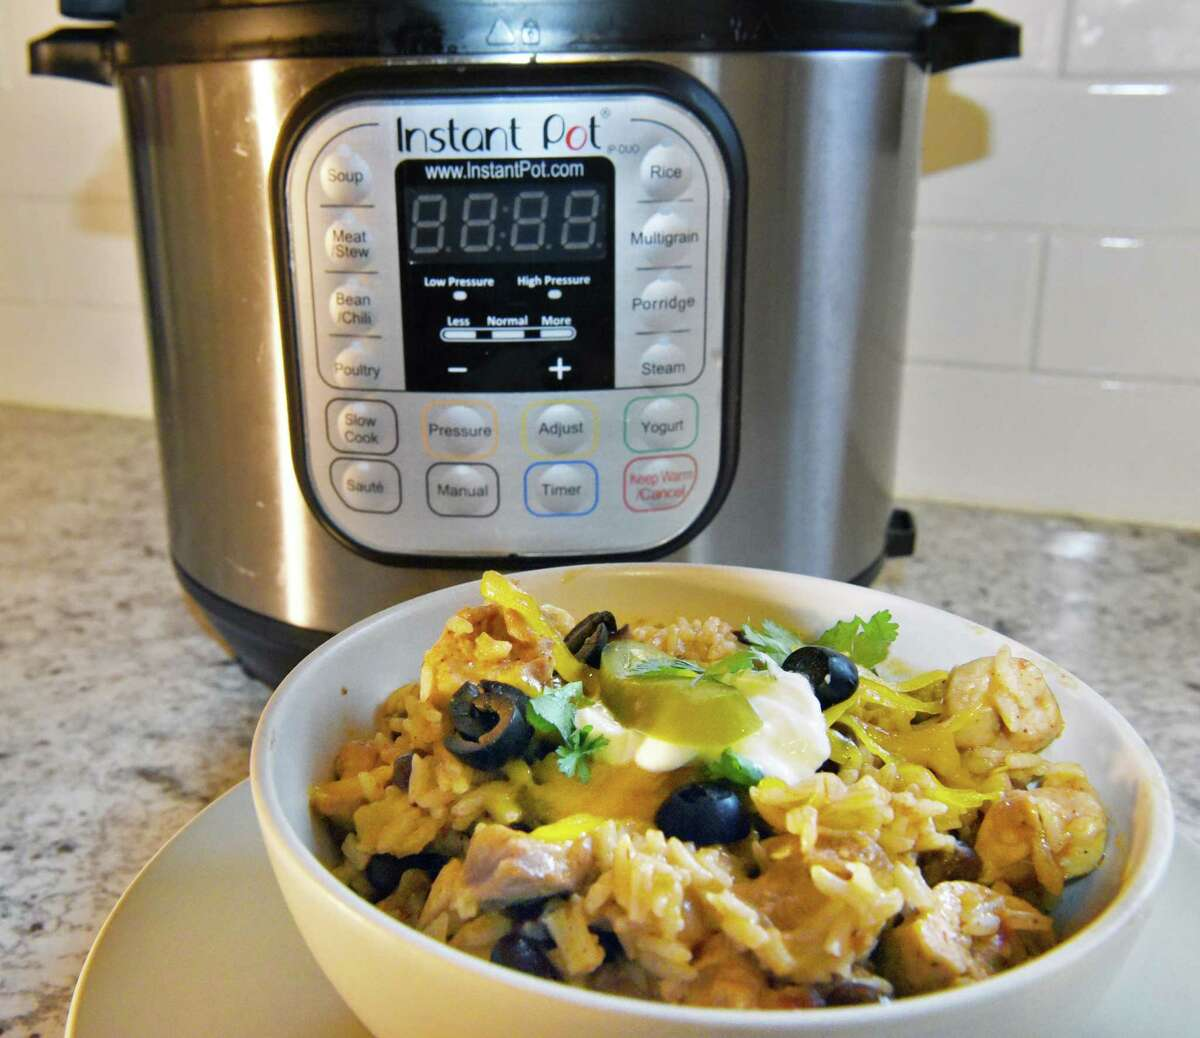 Elizabeth Barbone's Instant Pot to chicken burrito bowls Thursday April 6, 2017 in Troy, NY. (John Carl D'Annibale / Times Union)